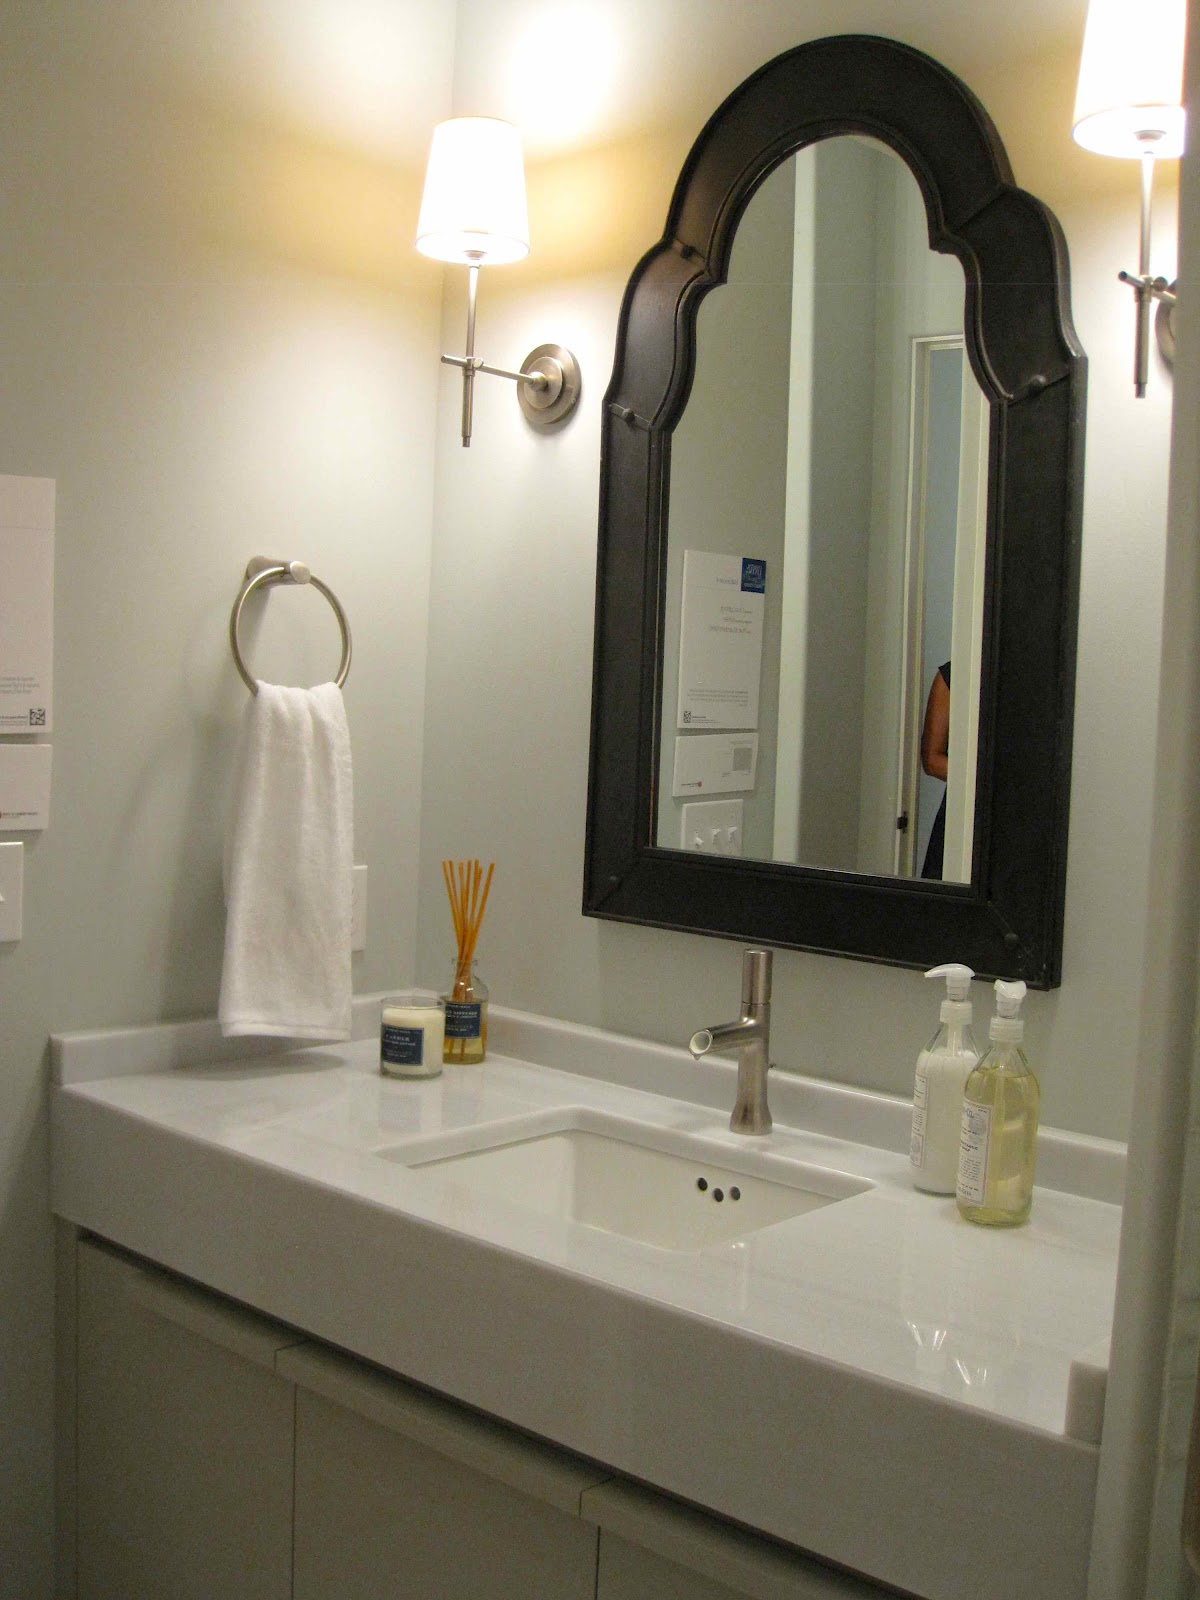 Tour of coastal living 39 s ultimate beach house part 2 Mirror design for small bathroom